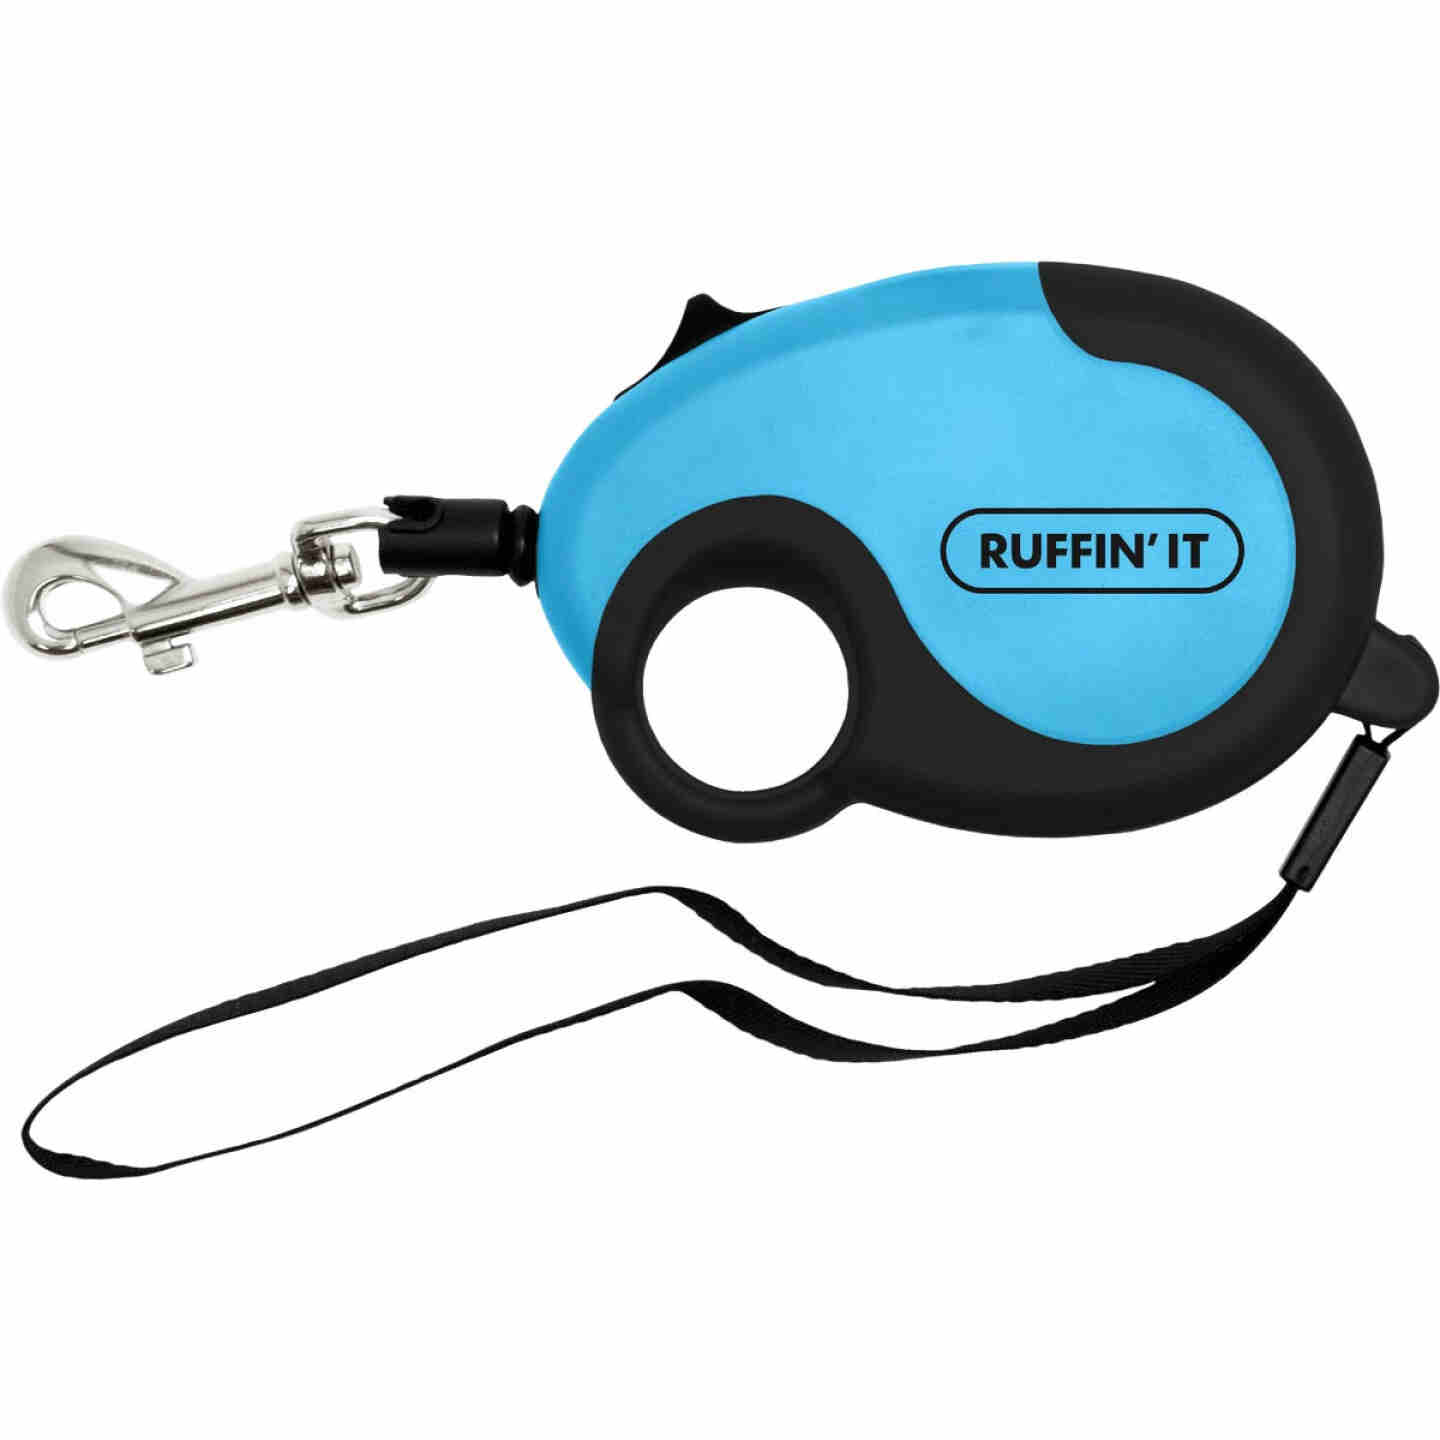 Westminster Pet Ruffin' it Palm Comfort 10 Ft. Cord Up to 30 Lb. Dog Retractable Leash Image 2